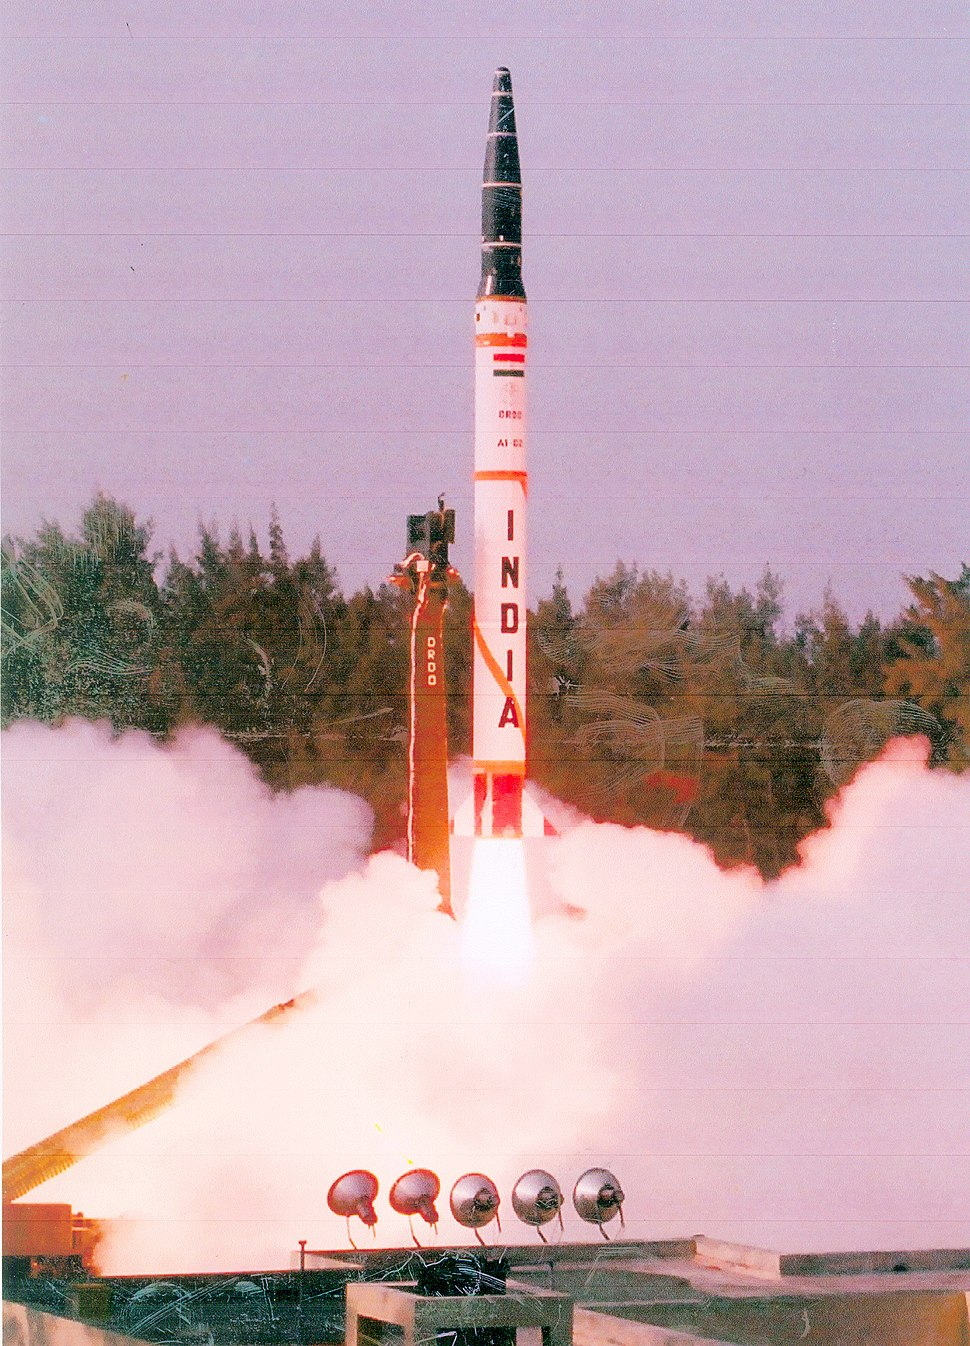 The user trial of Agni Missile A-I was conducted successfully by Strategic Forces Command at Chandipur at Sea near Balasore in Orissa on October 05, 2007